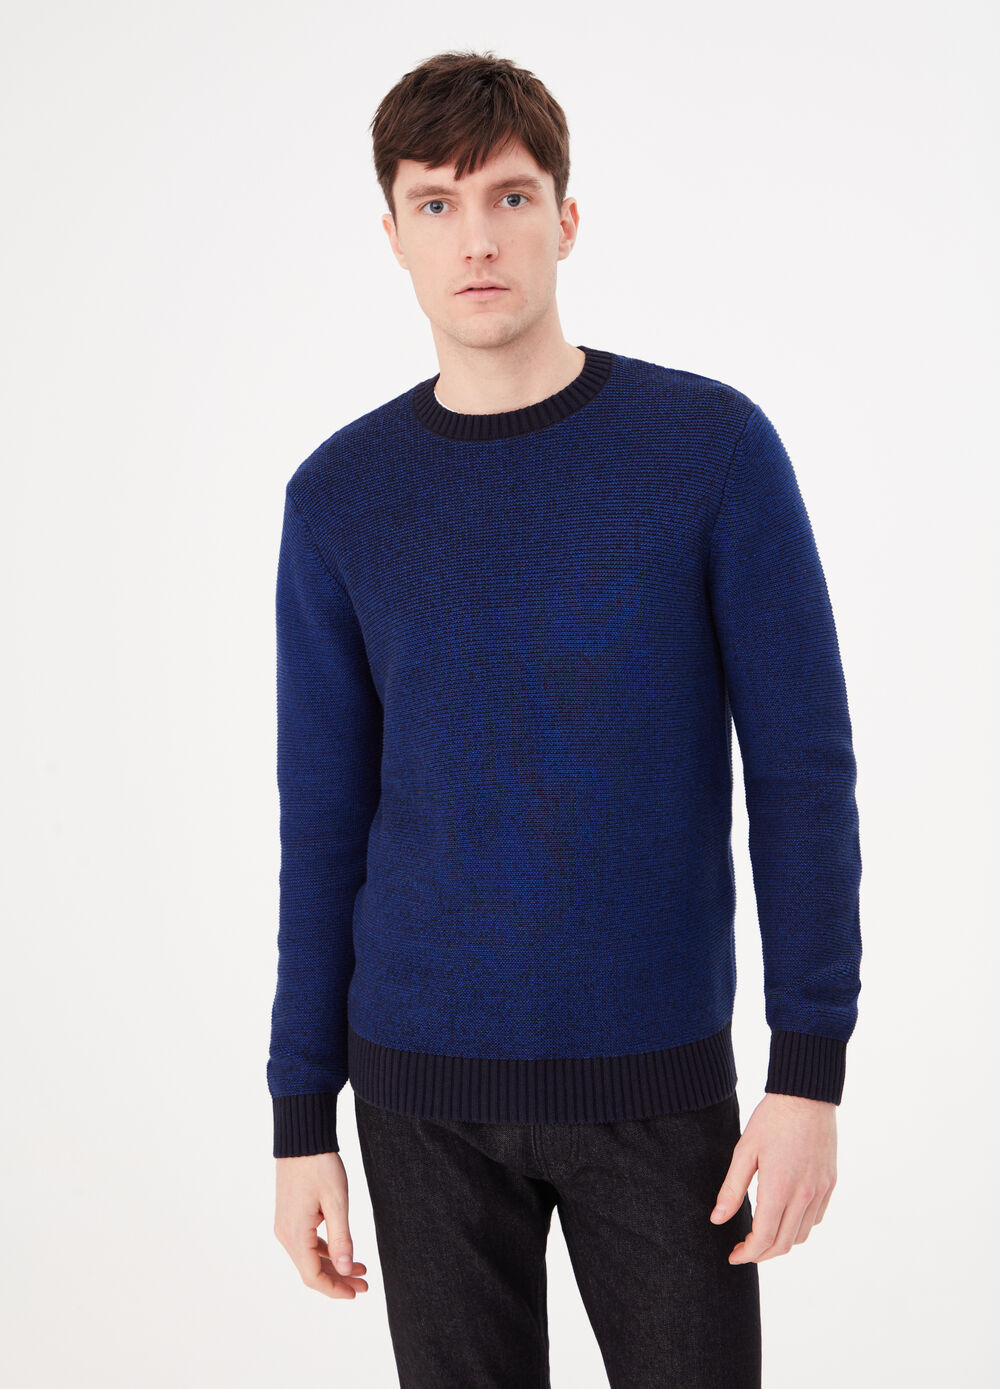 100% cotton pullover with contrasting ribbing